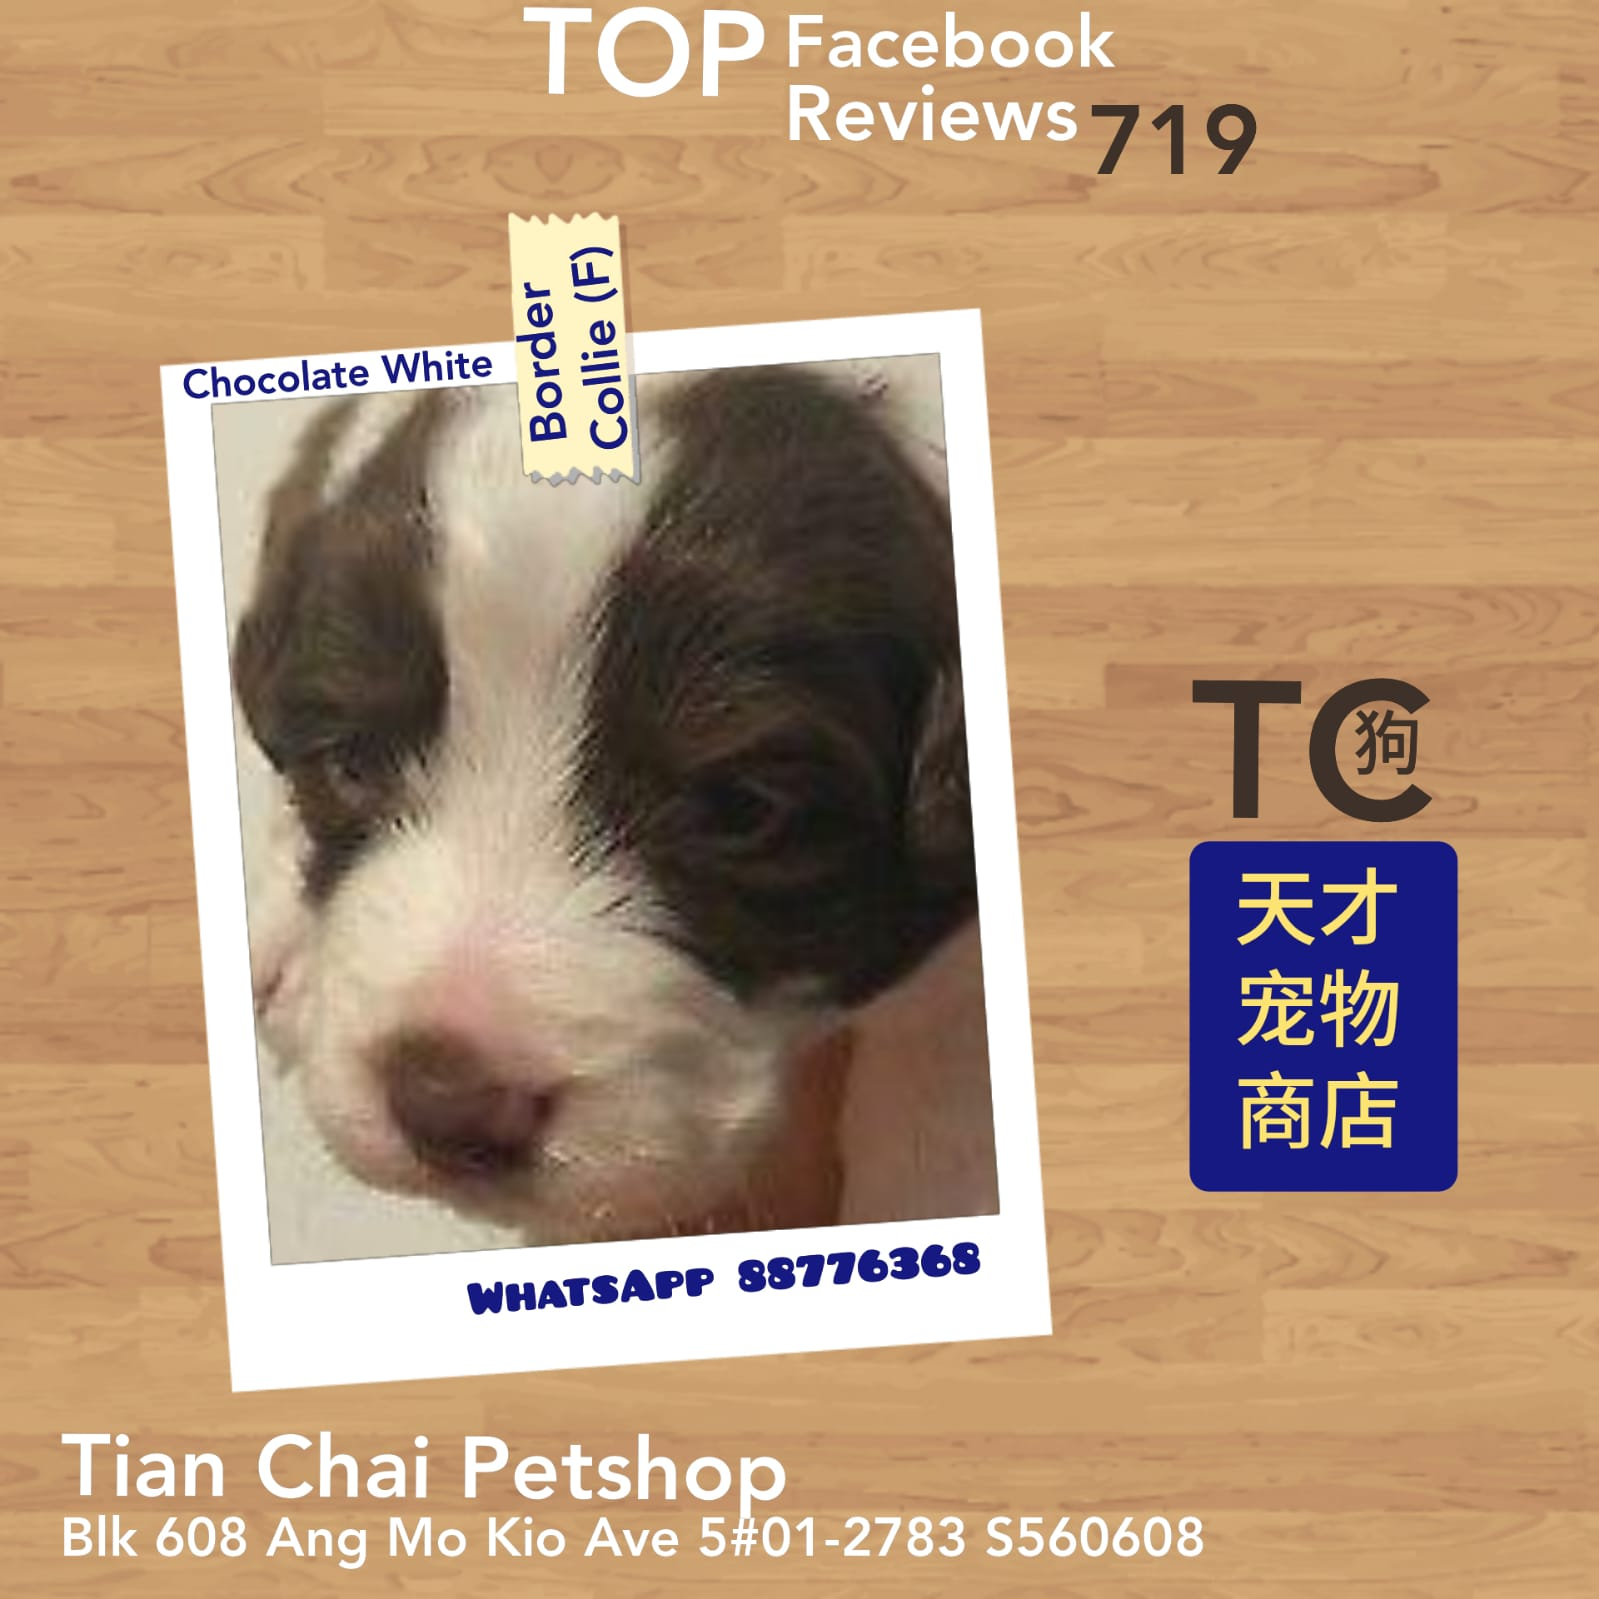 Imported Border Collie Puppies For Sale Singapore